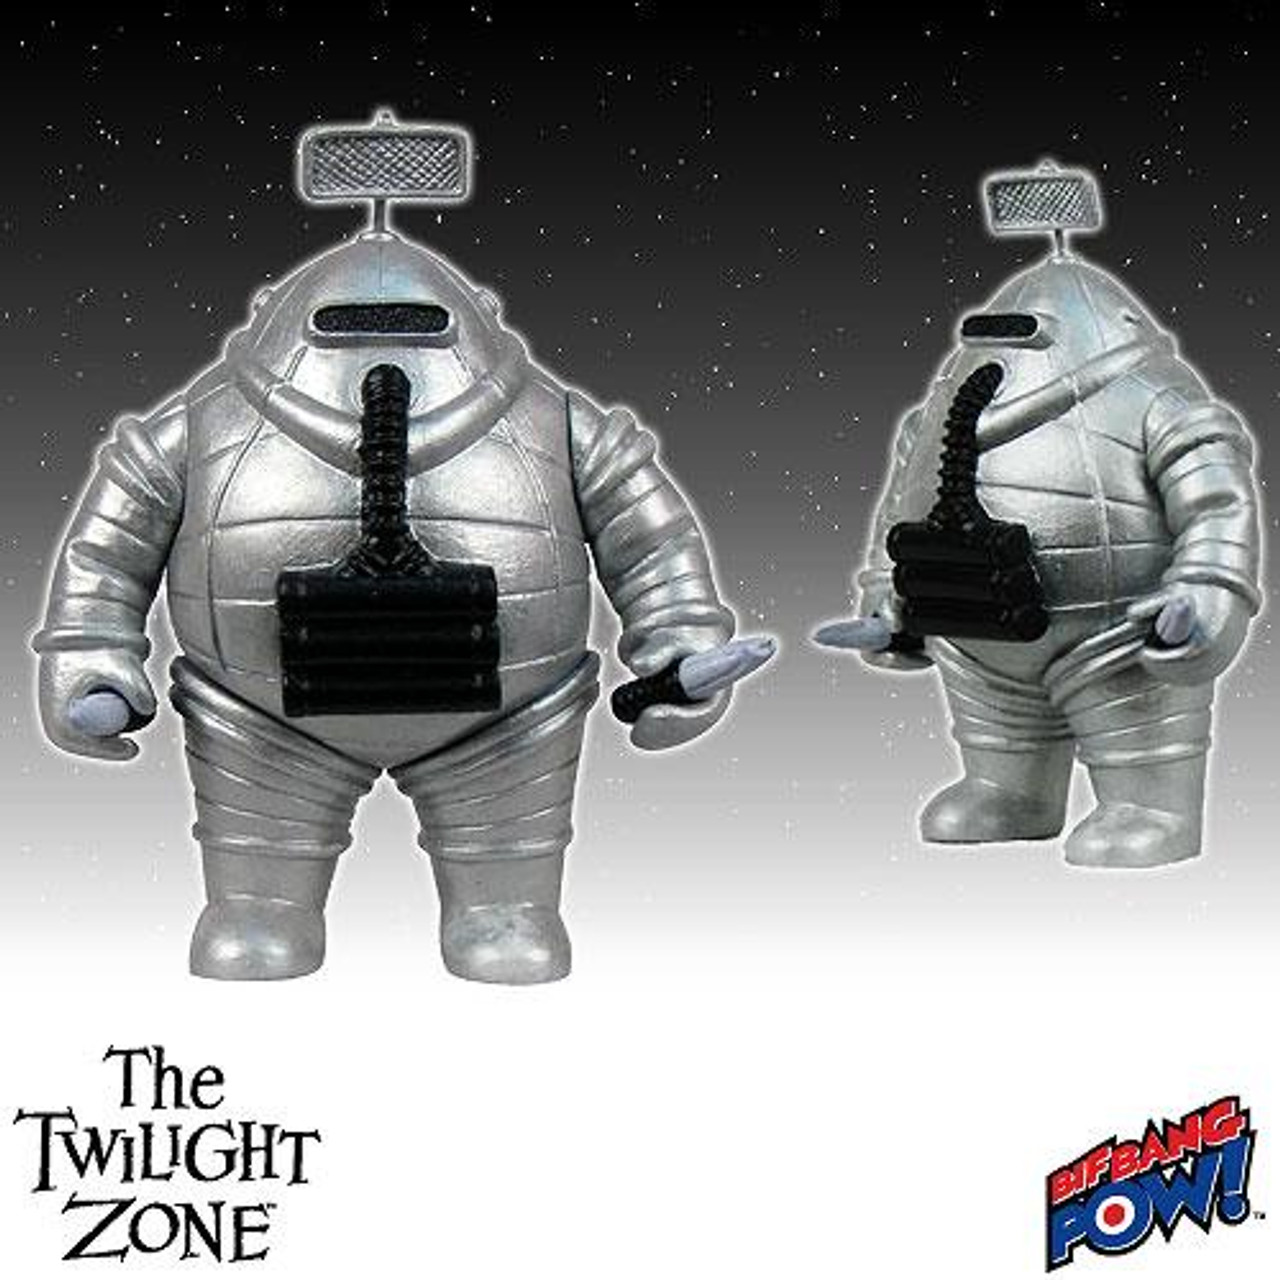 The Twilight Zone Invader Action Figure